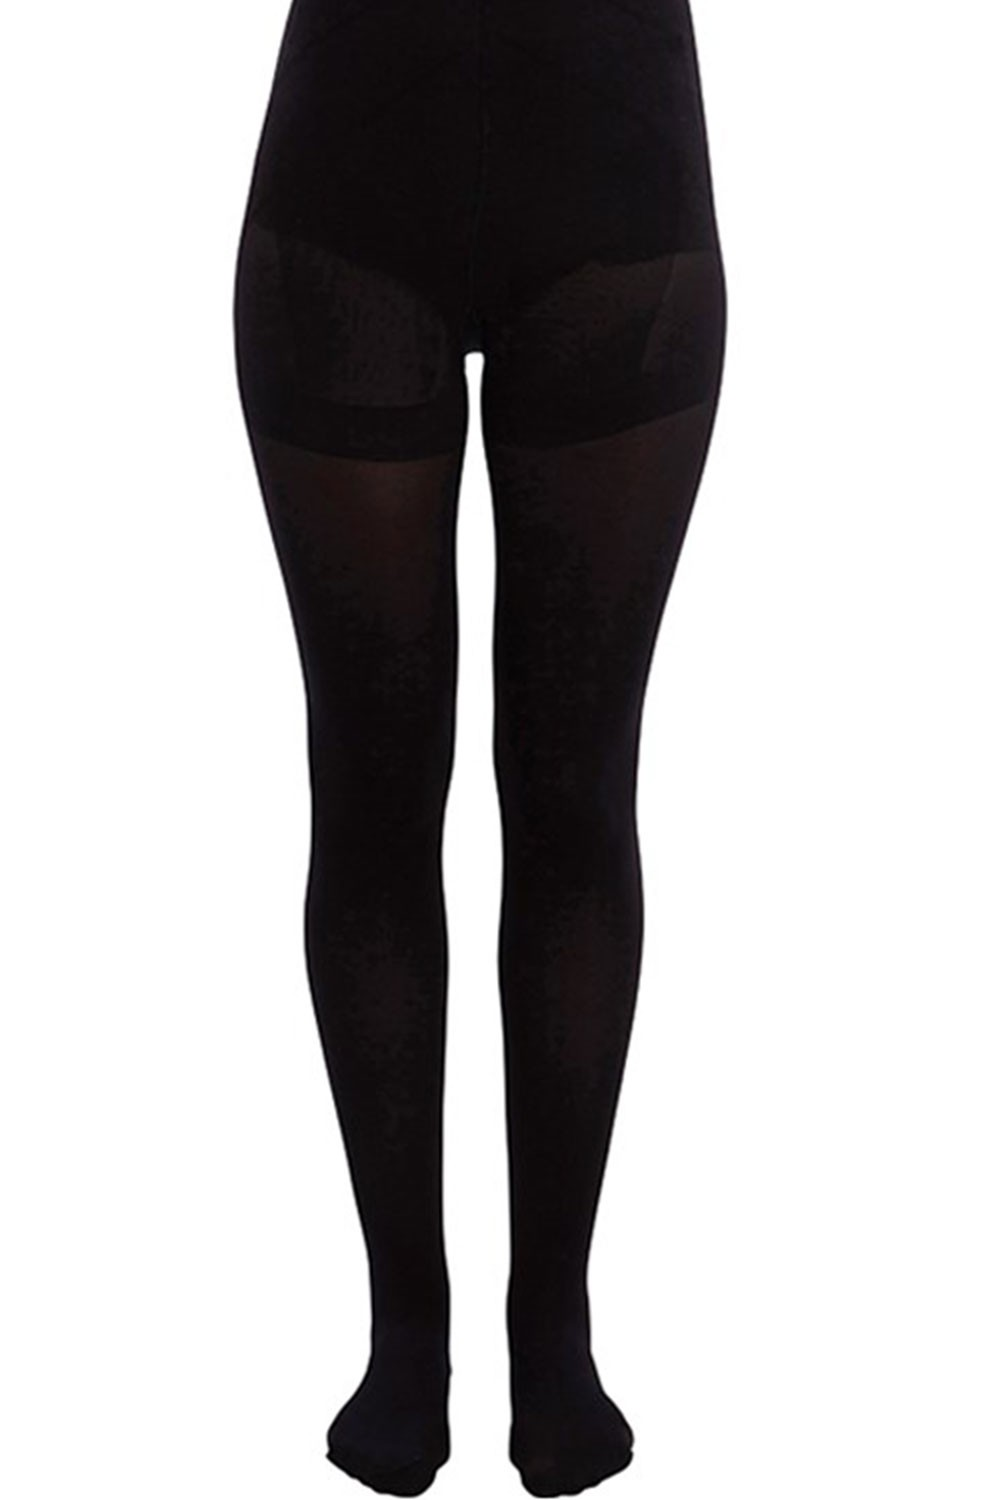 High Denier Tights, Stockings & Fishnet Tights Explained High Denier hosiery is usually made of heavier fabrics, has more thickness and is over 40 Denier. High deniers are perfect for cold winter weather as they feel so warm and comforting.